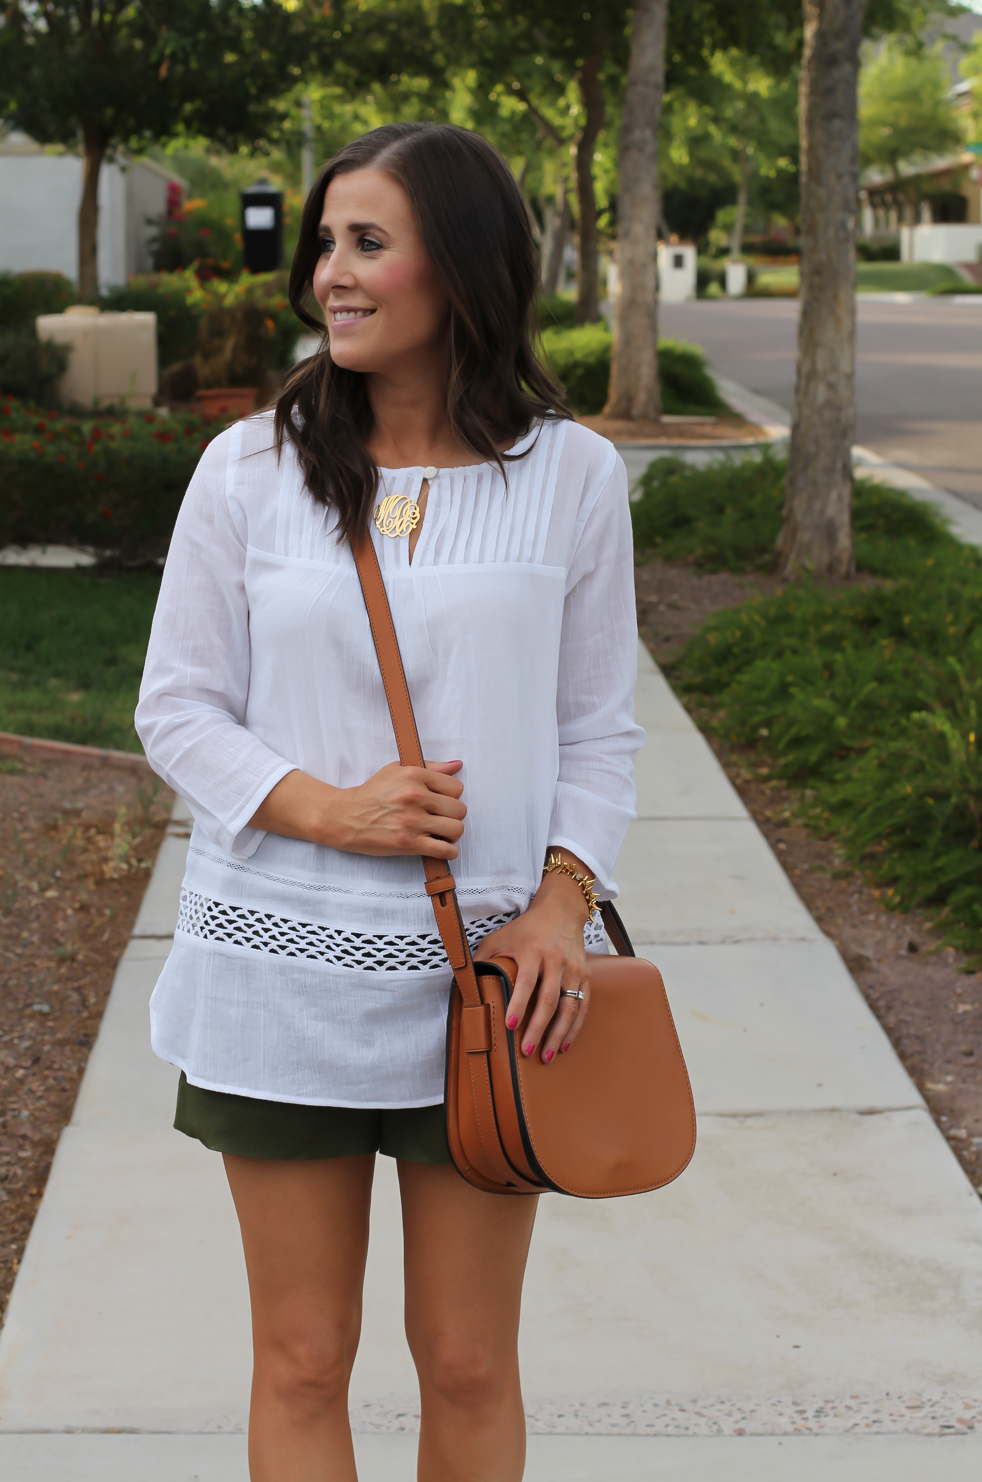 Gauze White Lace Tunic, Green Linen Shorts, Brown Suede Espadrilles, Brown Leather Crossbody Bag, Old Navy, J.Crew, Chloe, Tory Burch 16